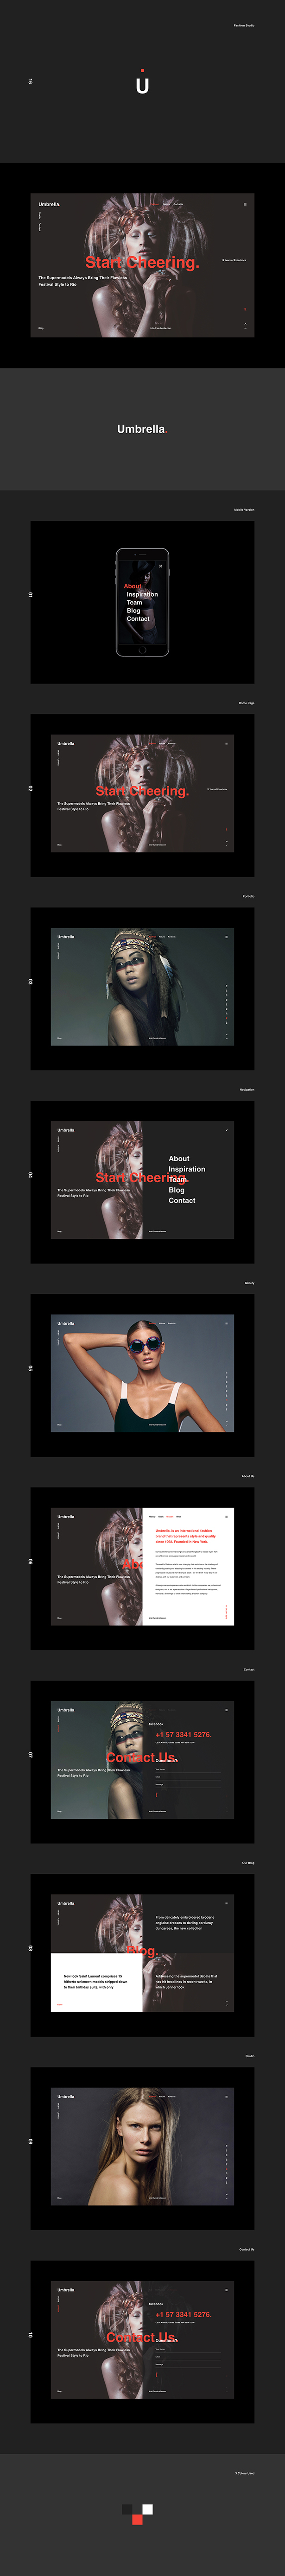 Umbrella - Photography WordPress Theme. - 2